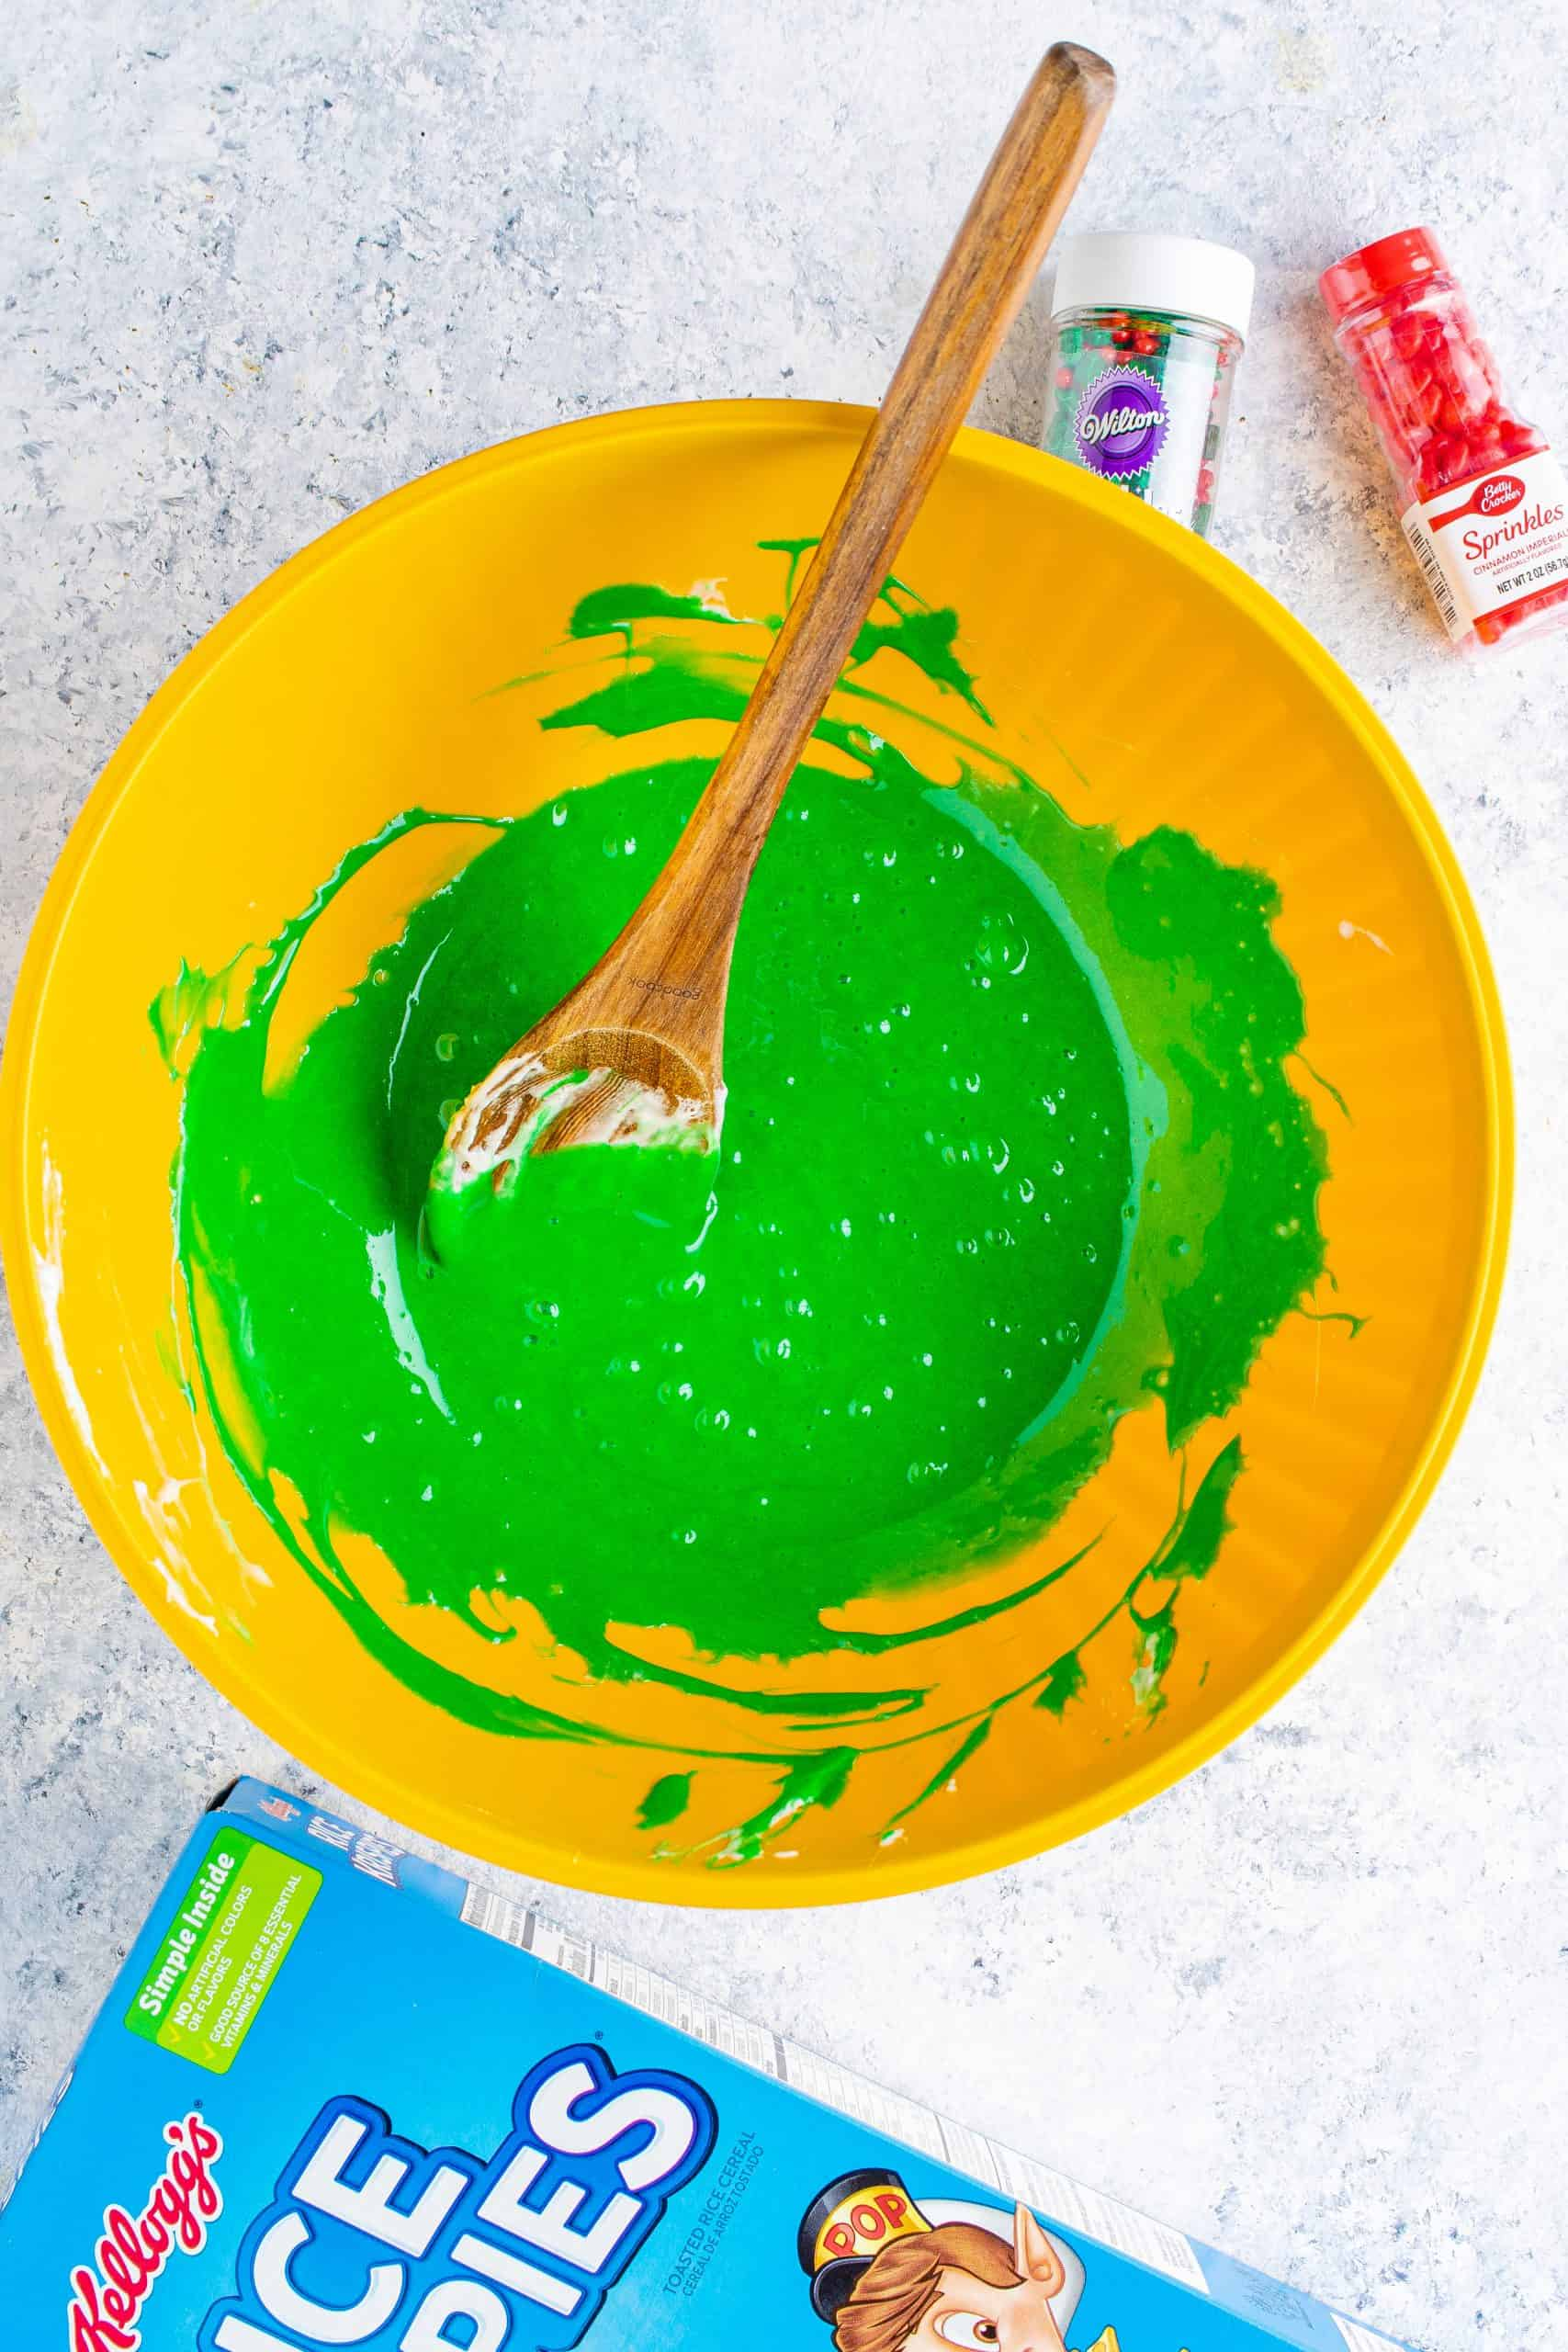 adding green food gel coring to melted marshmallows in a large yellow bowl and stirring with a wooden spoon.